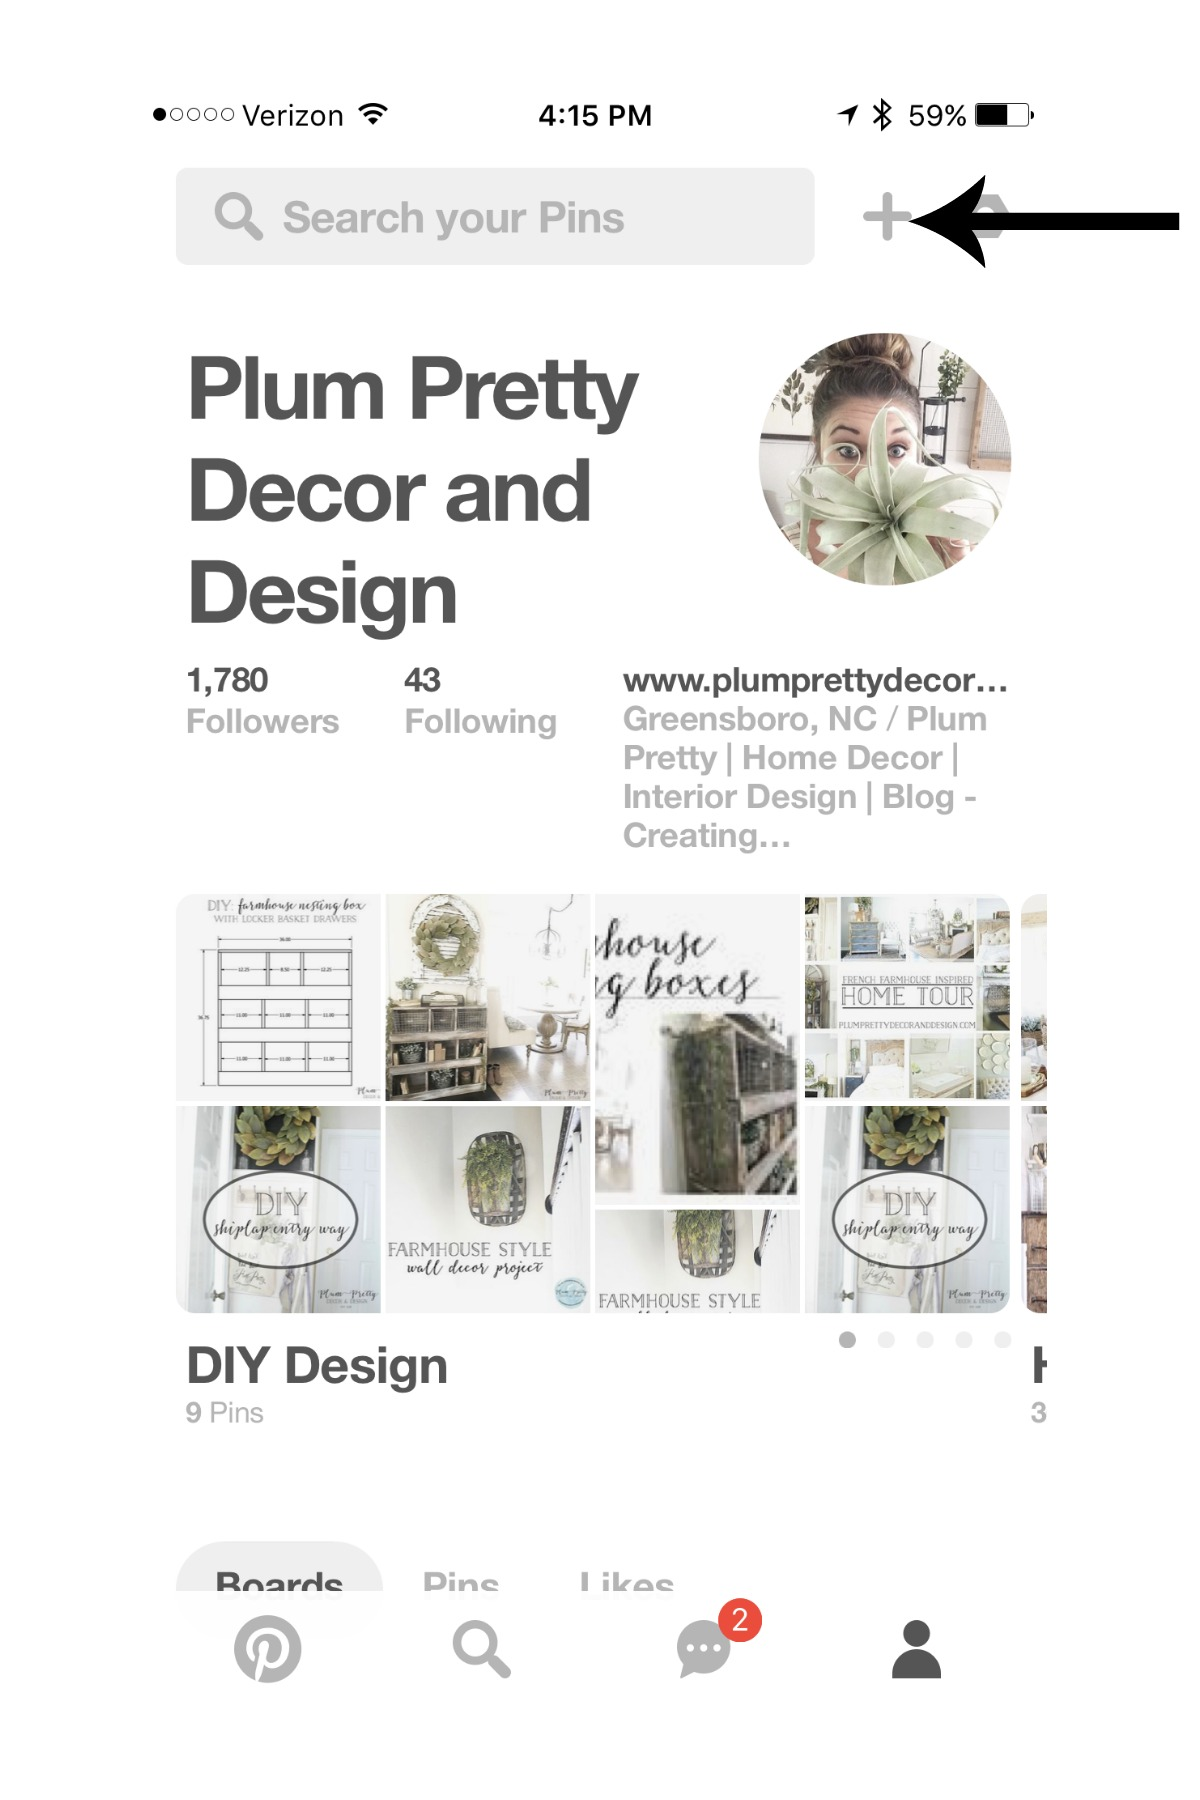 4. Pull up your Pinterest Profile Page and Click the + sign in the right upper corner